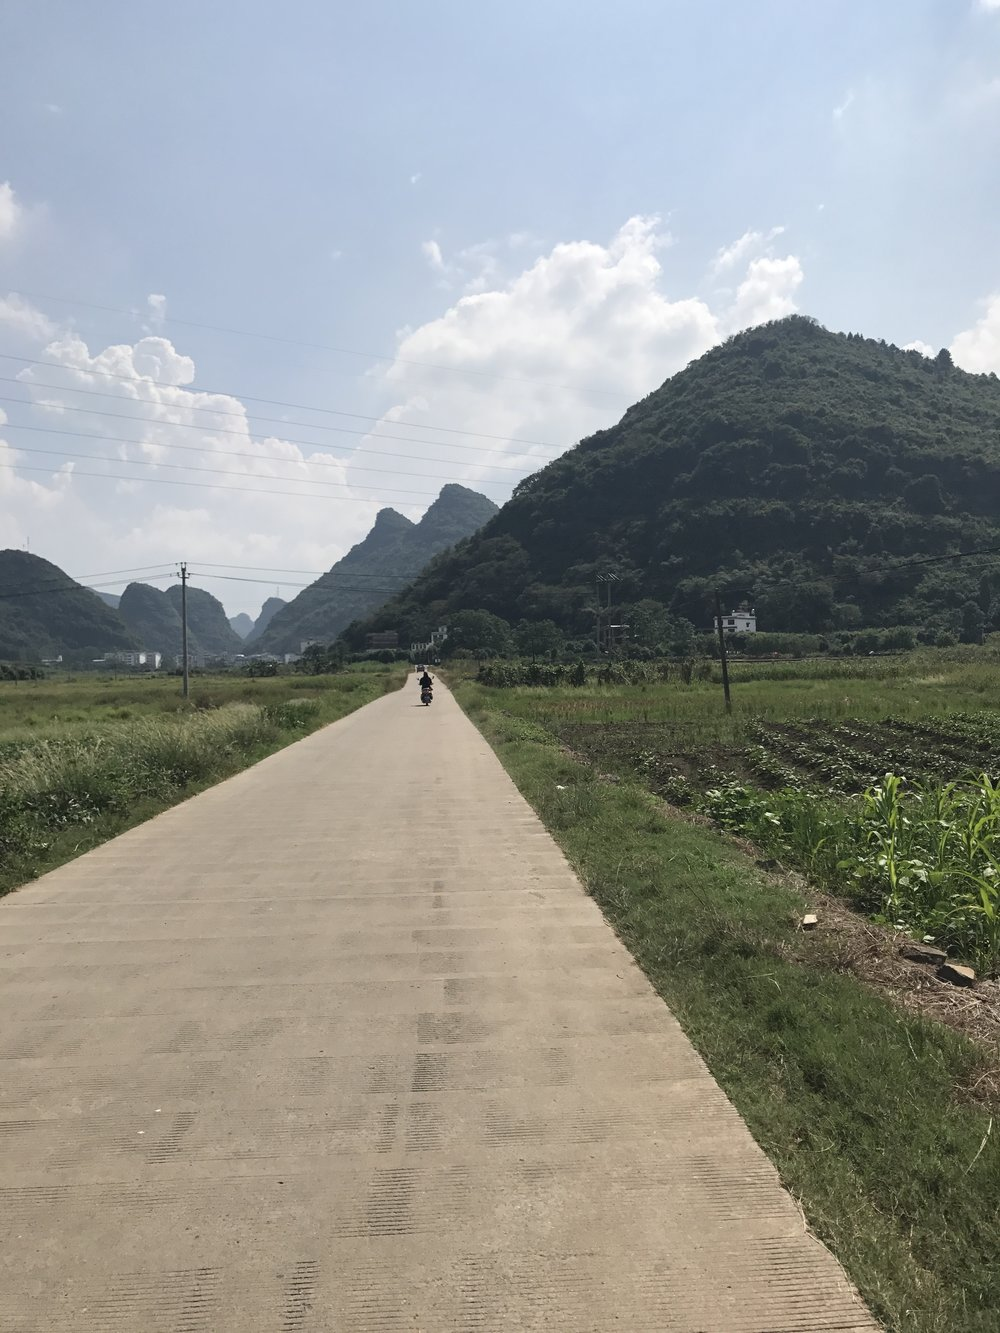 wandering the back roads of Yangshuo, China